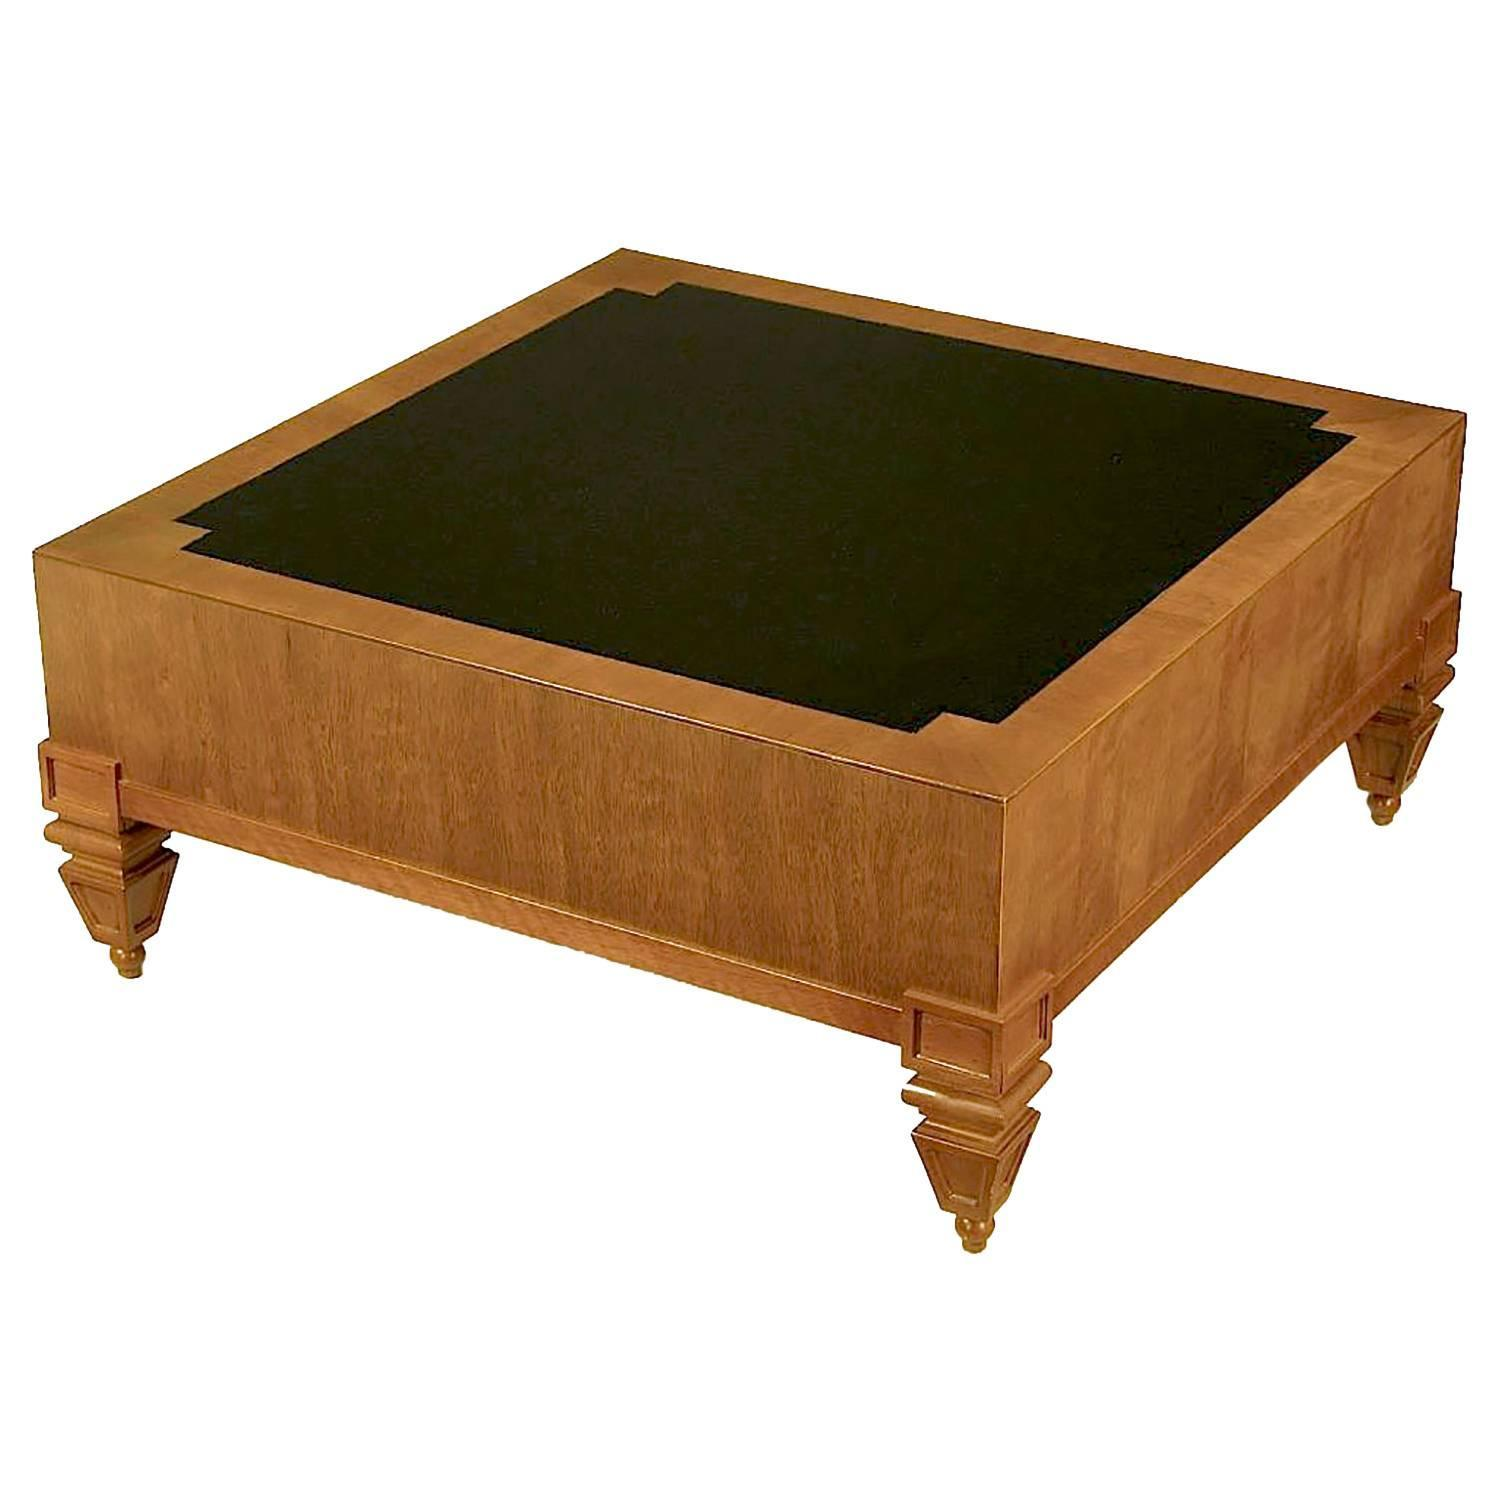 Tomlinson empire style mahogany and black leather square coffee table for sale at 1stdibs Square leather coffee table